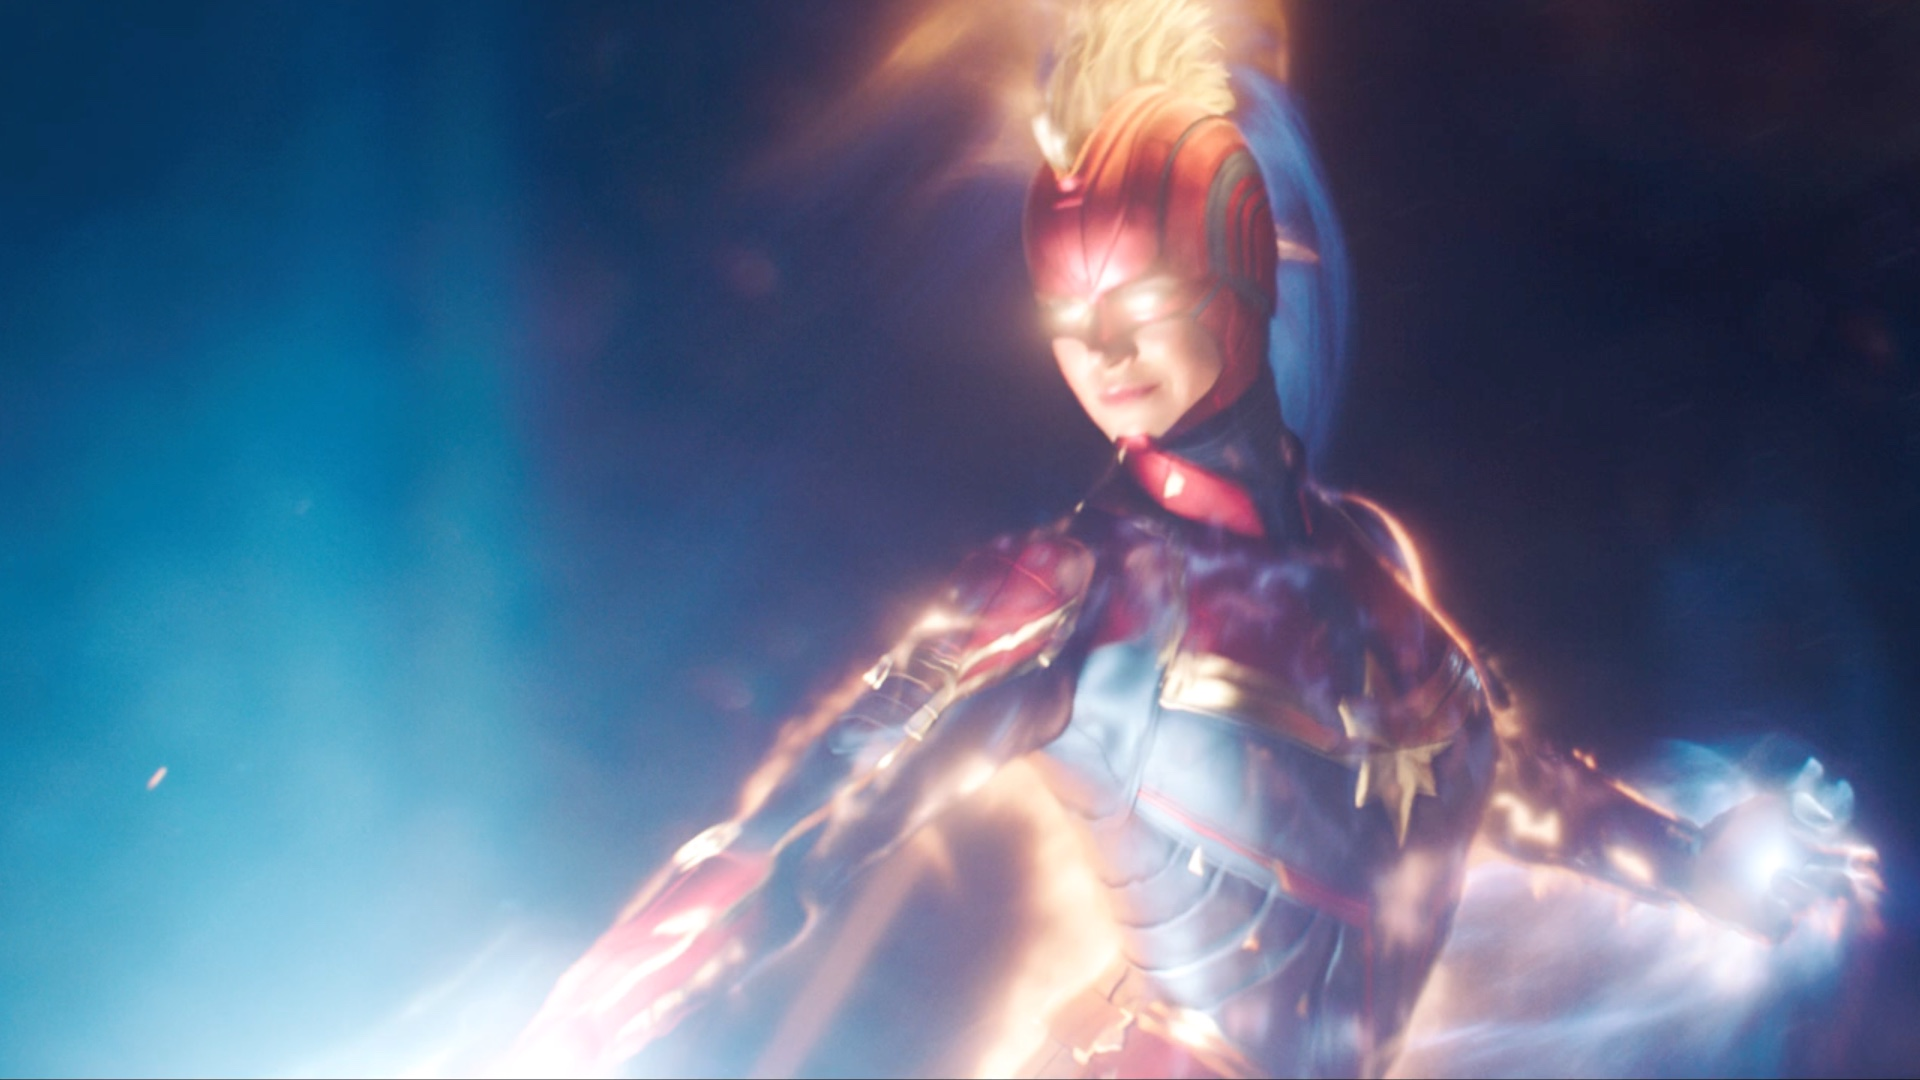 Jude Law And Brie Larson Stand Tall In This New Captain Marvel Image